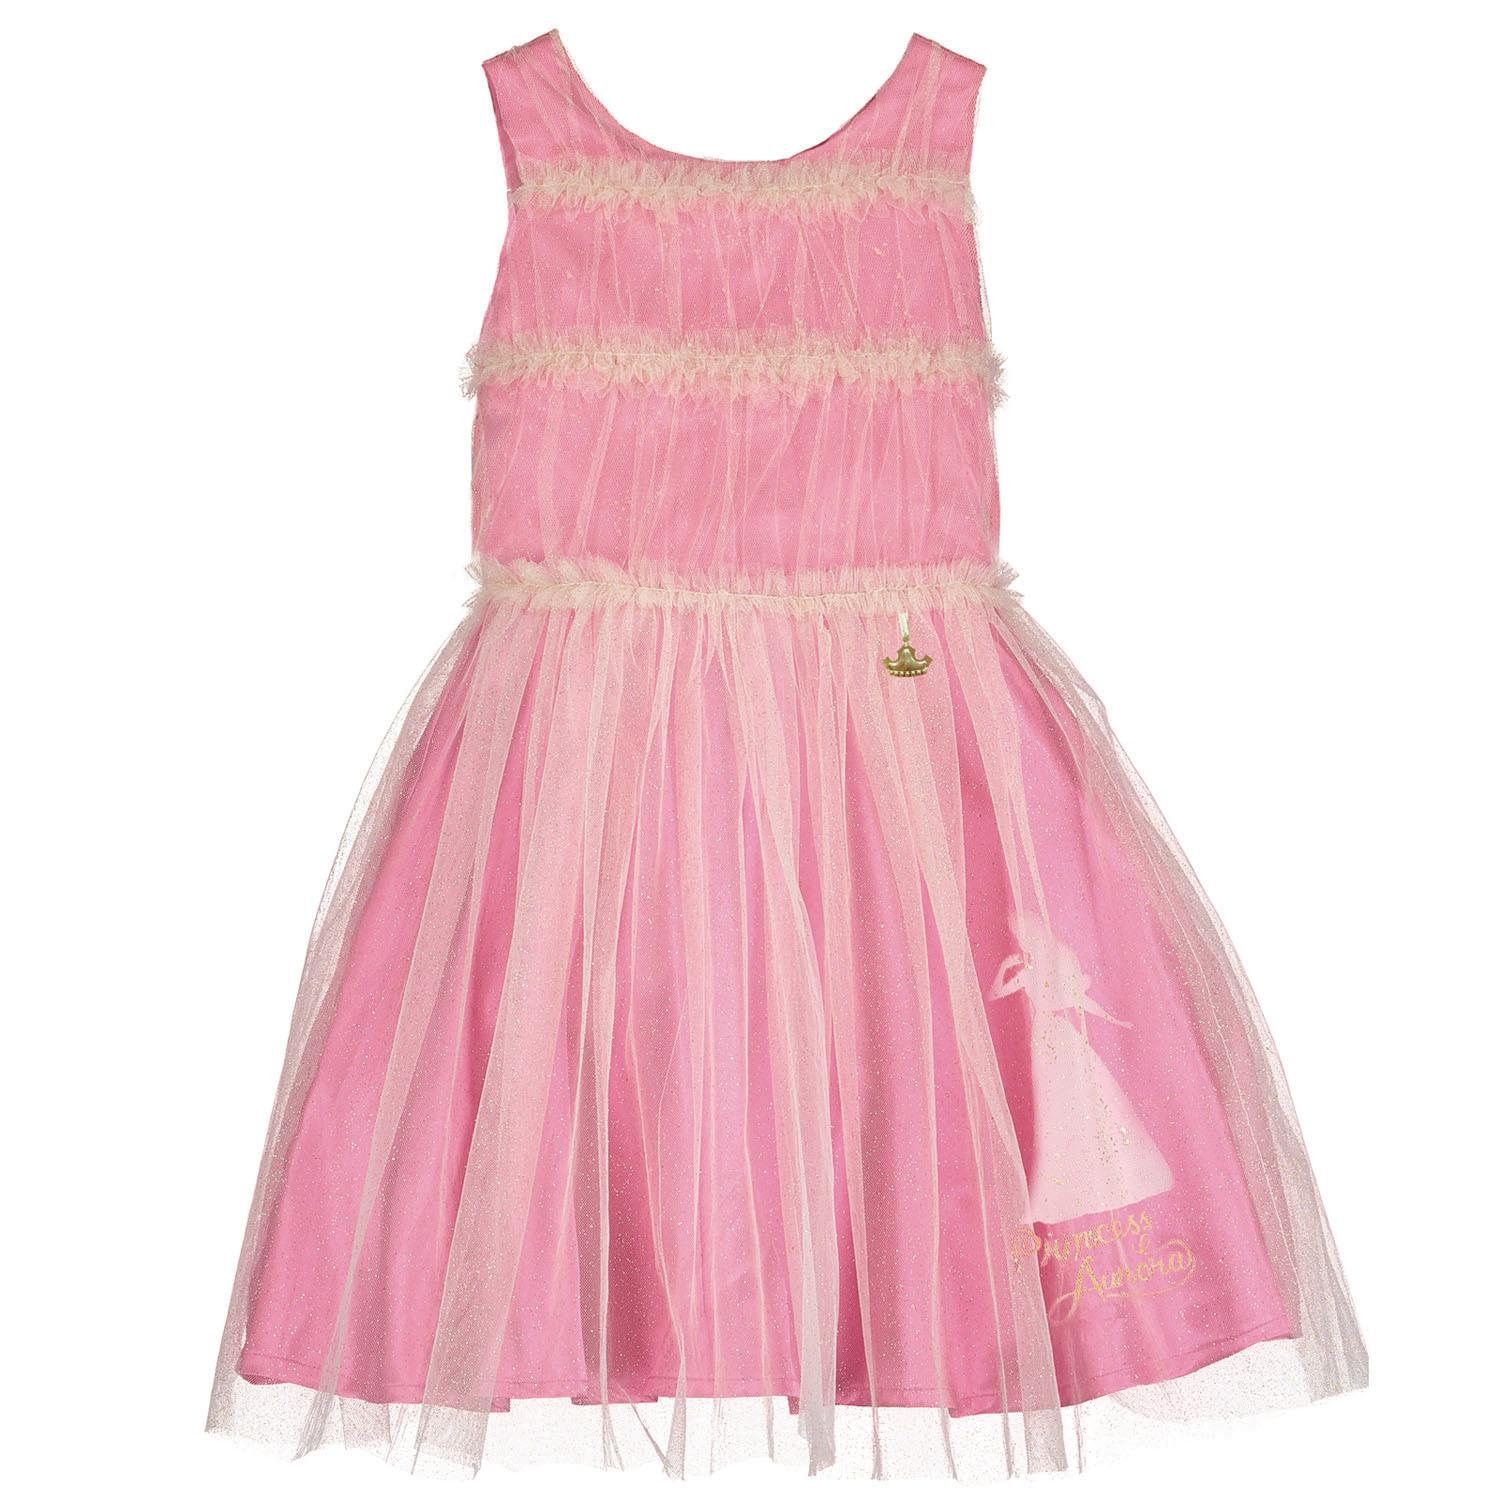 Aurora Sleeping Beauty Pink Dress with Ruffle Bodice